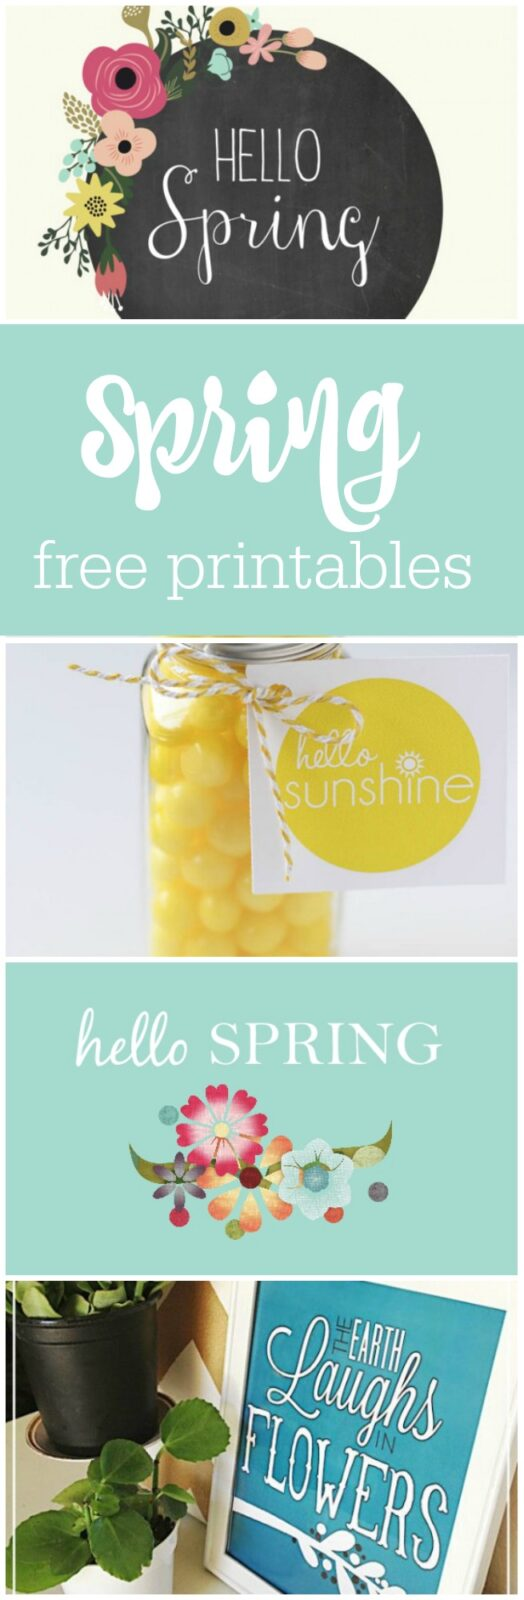 24 free printables for spring curated by The Party Teacher